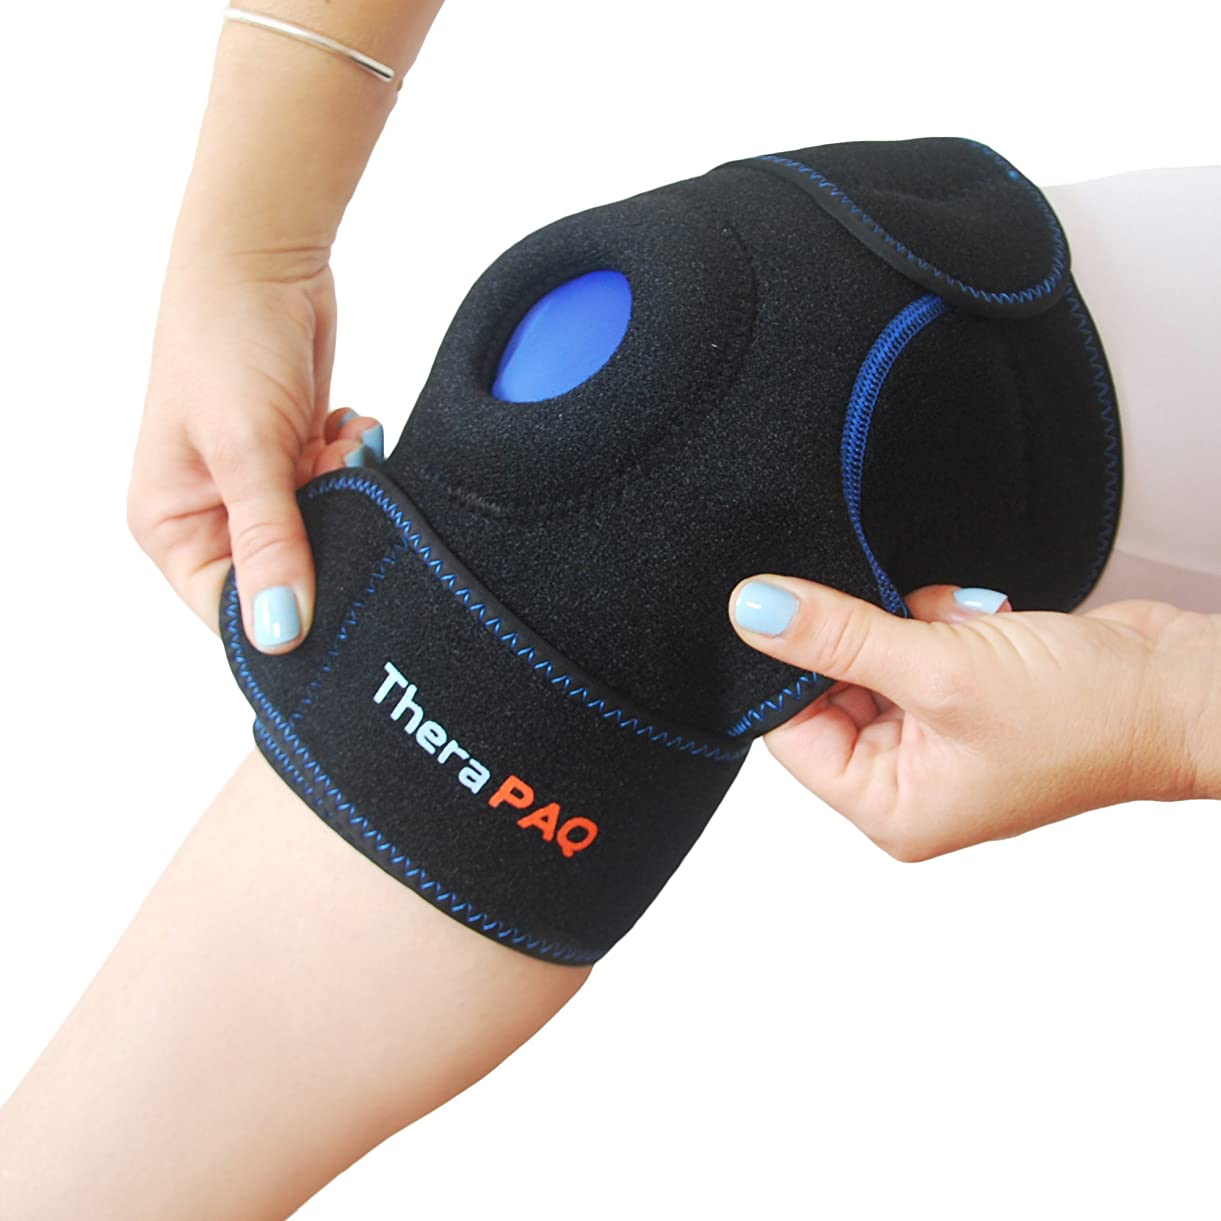 Knee Ice Pack Wrap by TheraPAQ: Hot & Cold Therapy Knee Support Brace - Reusable Compression Sleeve for Bursitis Pain Relief, Meniscus Tear, Rheumatoid Arthritis, Injury Recovery, Sprains & Swelling xngfp4610